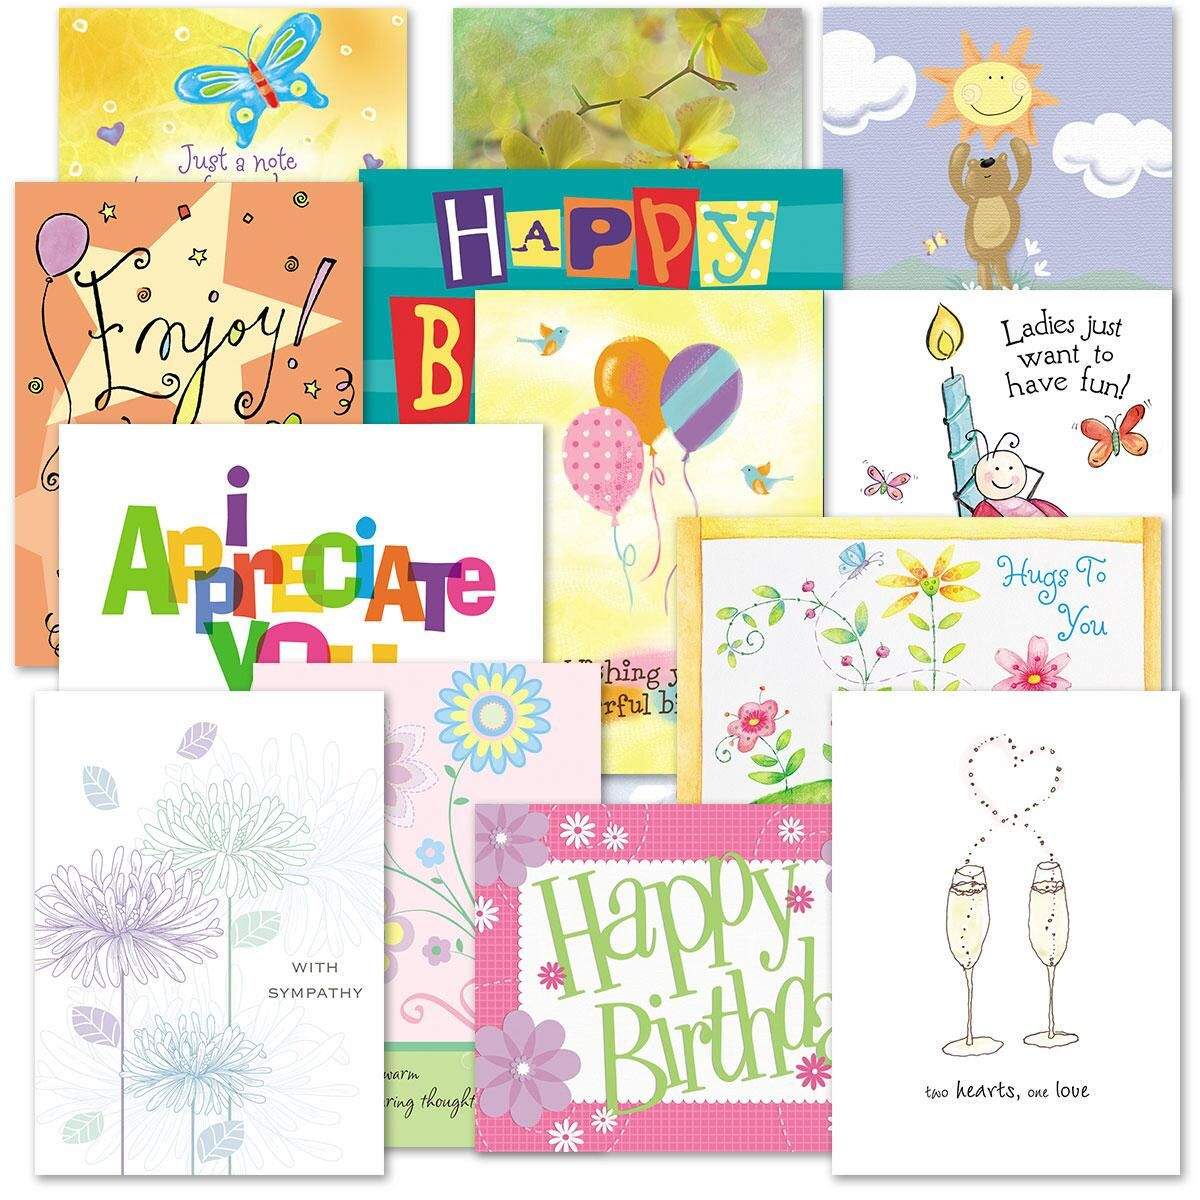 80-Card Mega All Occasion Cards Value Pack